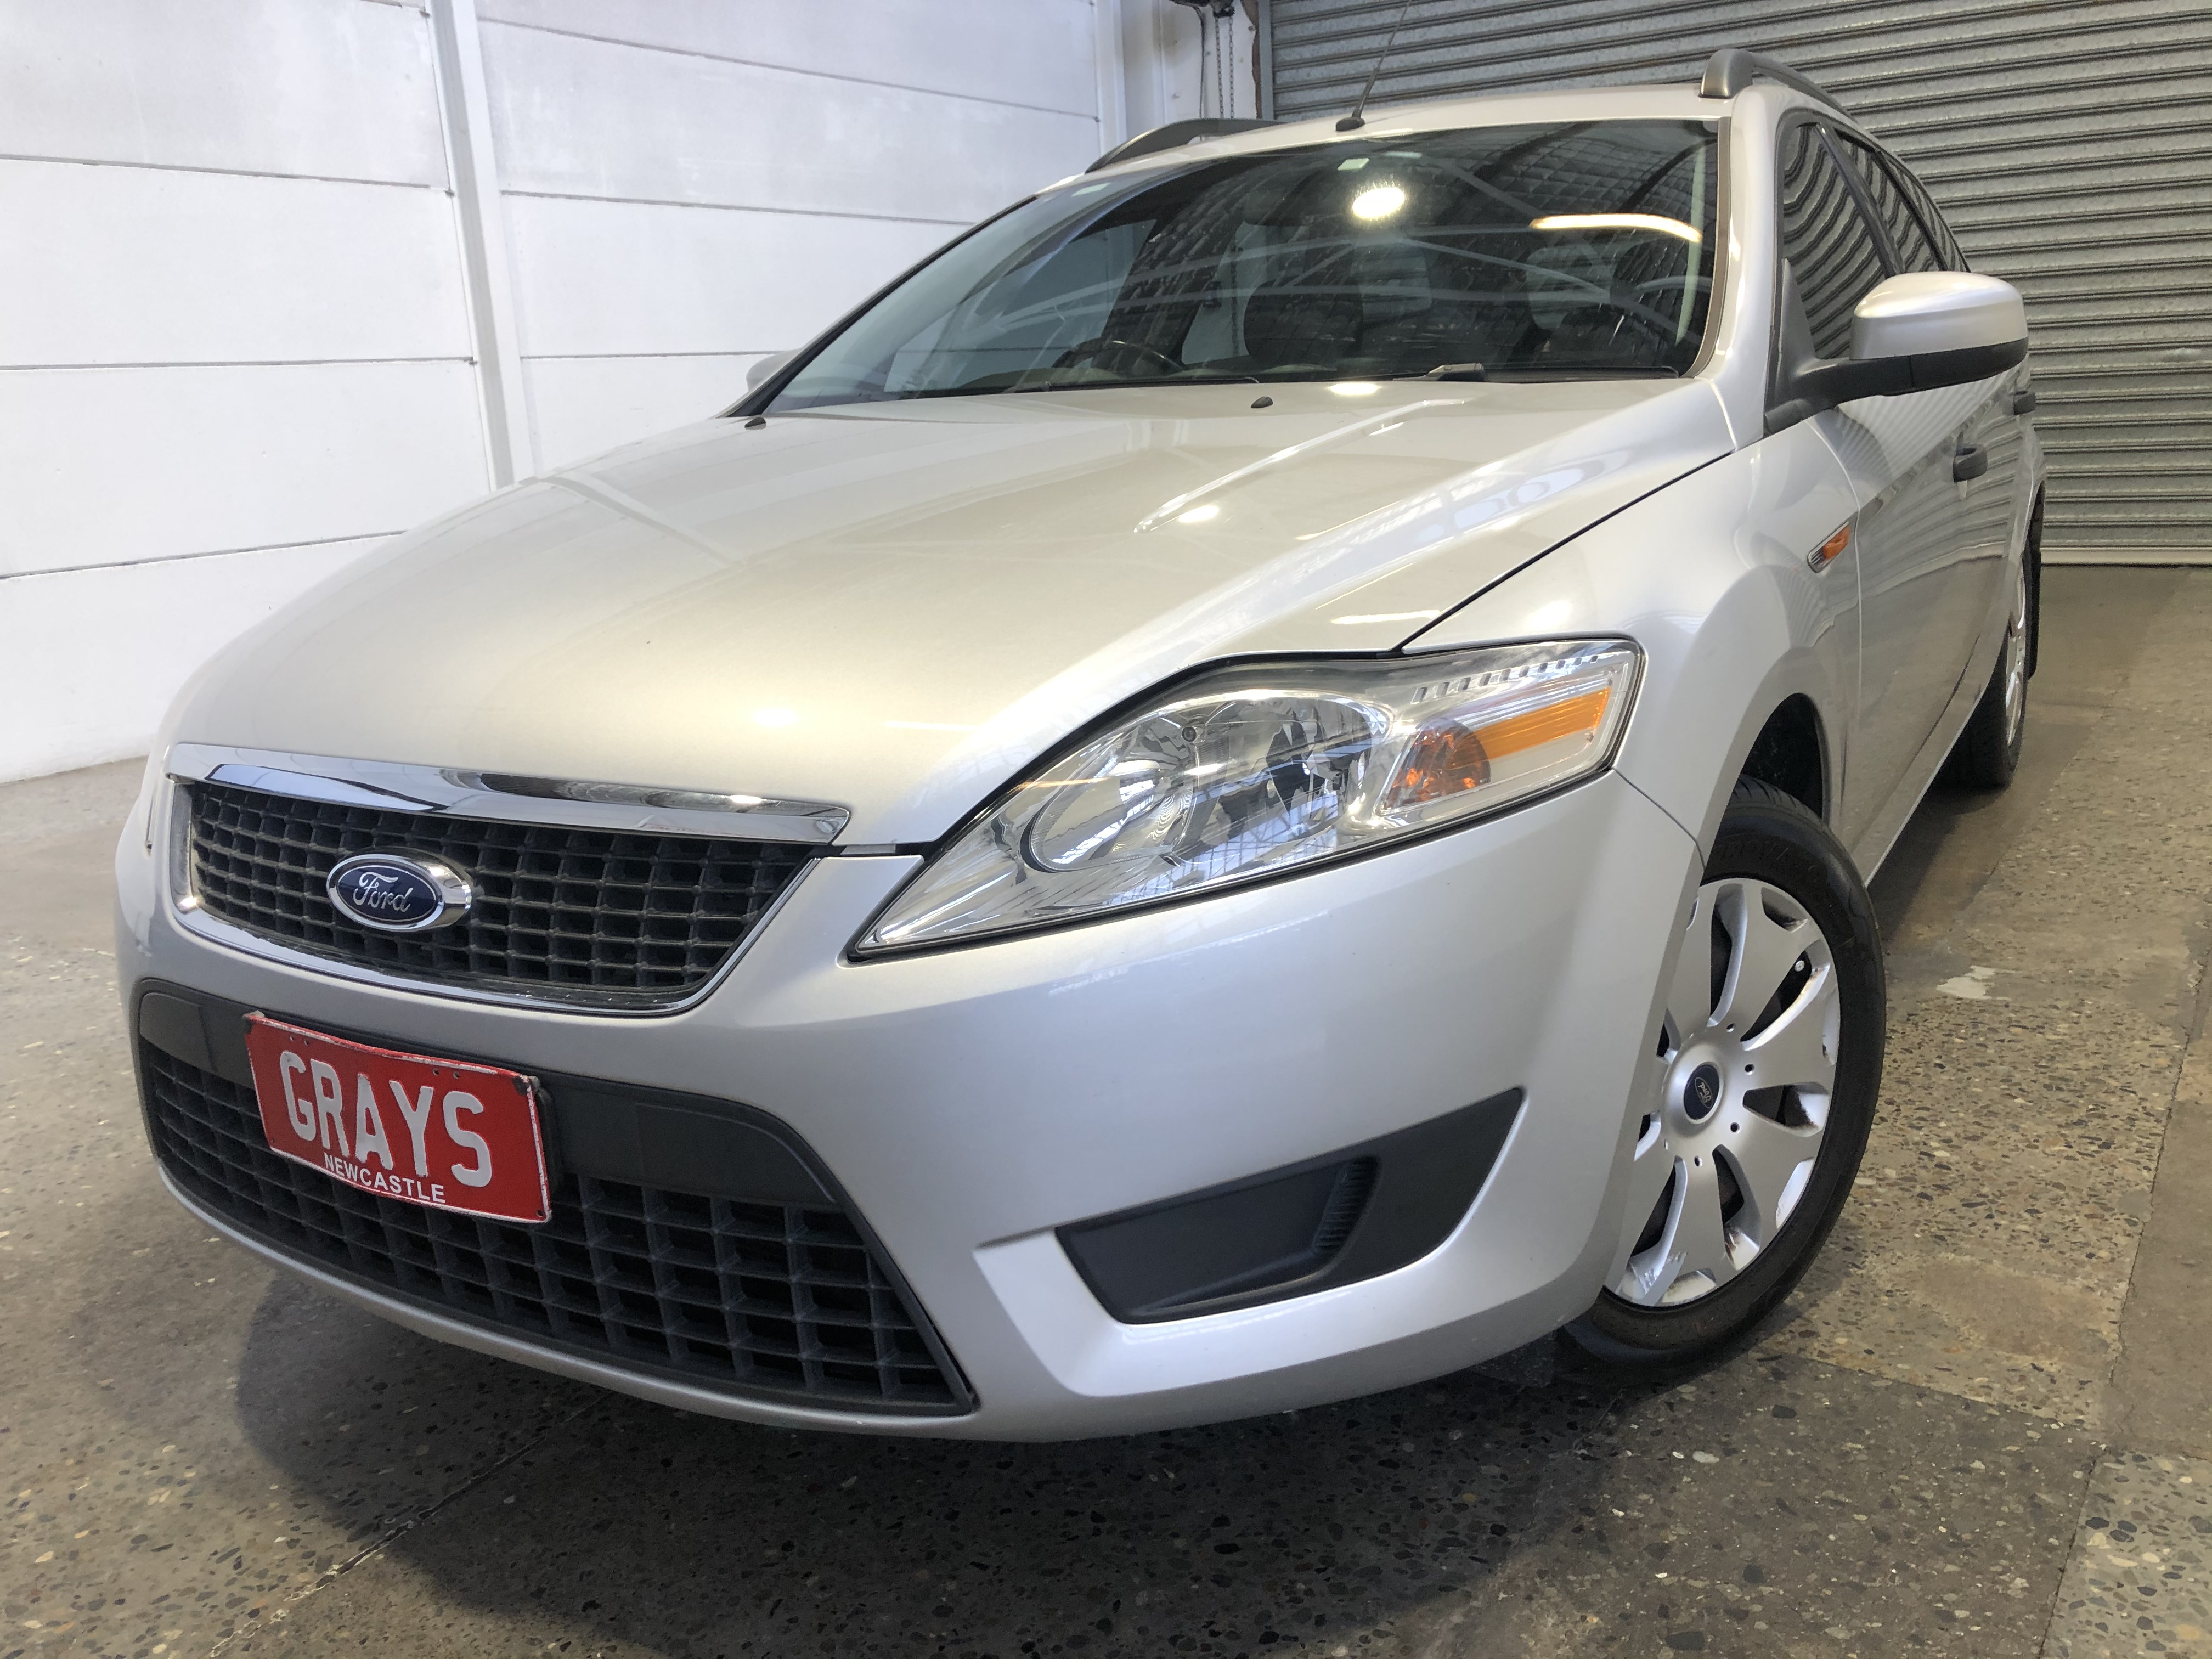 Ford Mondeo LX MB Automatic Wagon